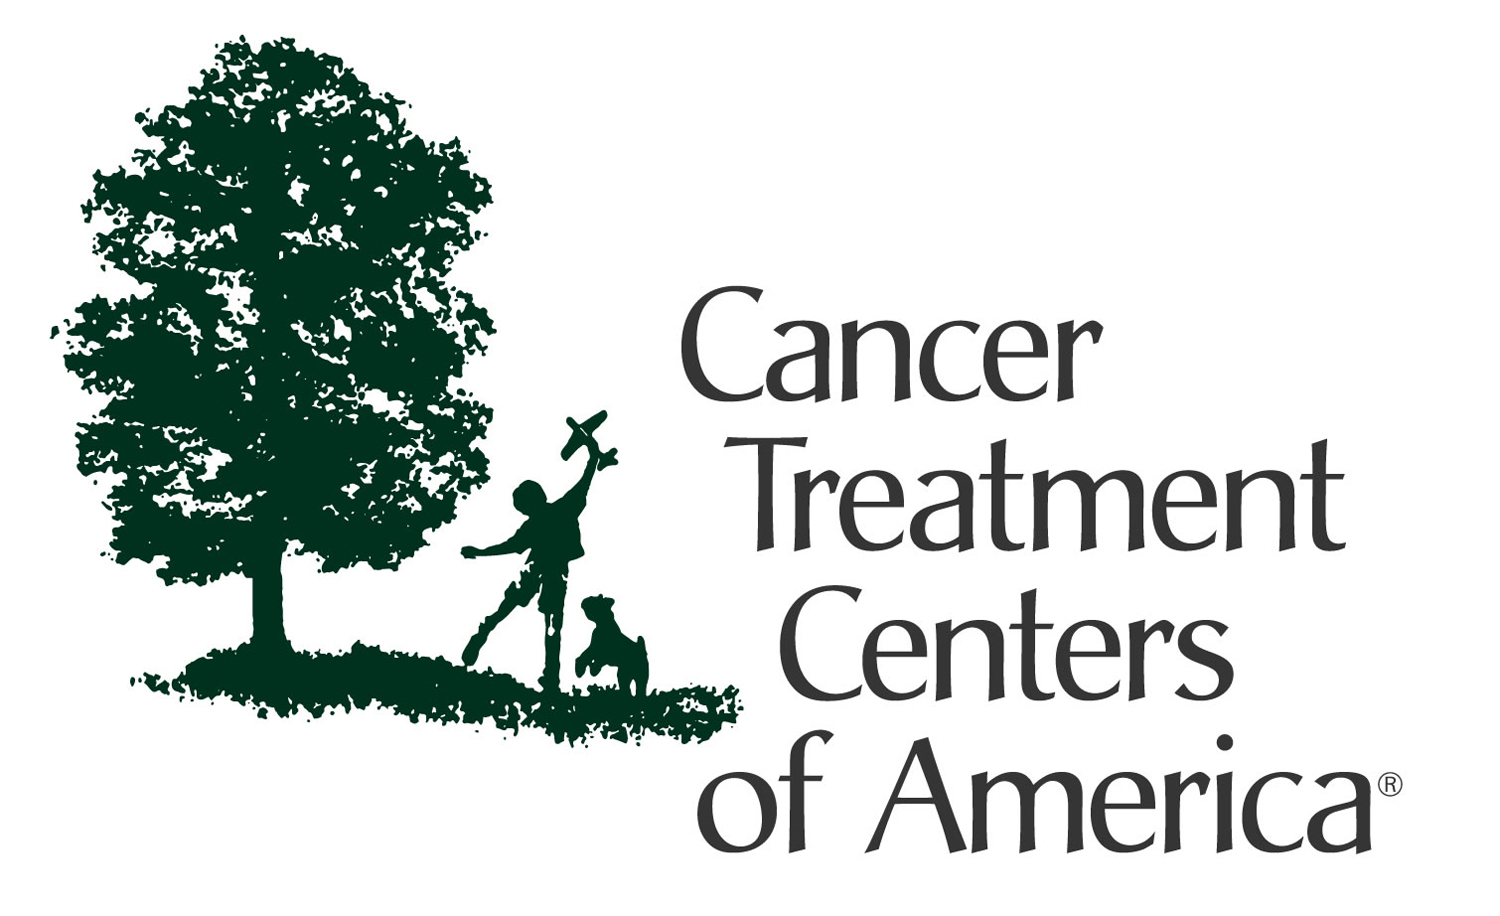 Cancer treatment centers of america reviews 2012